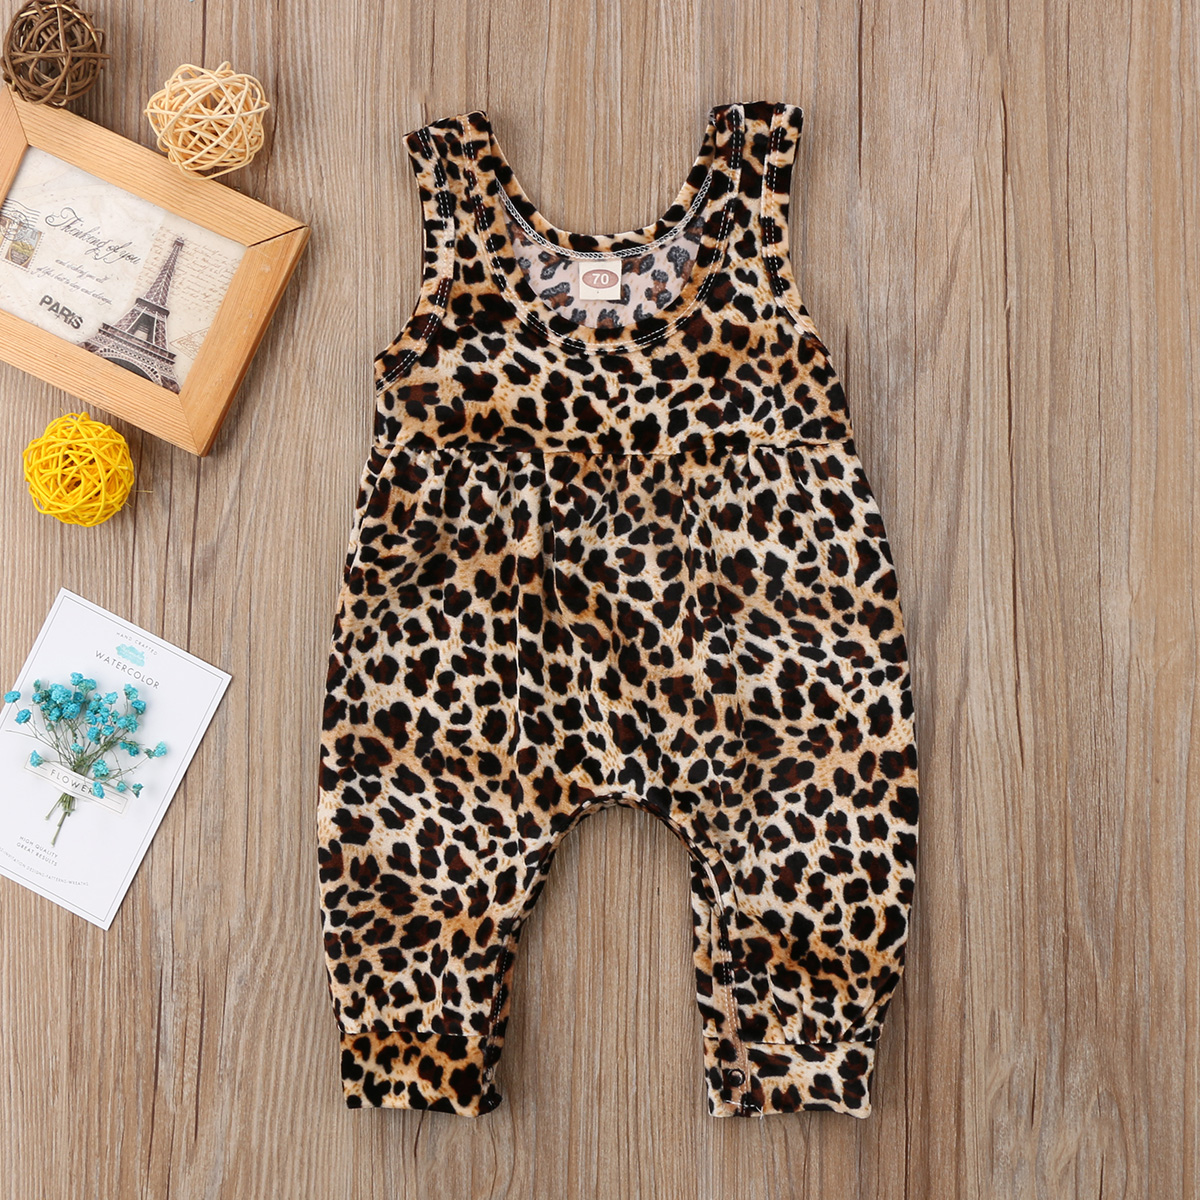 388d11dc1e2f Print Sleeveless Toddler Girl Rompers Clothing Newborn Baby Girls Leopard  Romper Jumpsuit Harem Pants Outfits Clothes Summer -in Rompers from Mother  & Kids ...